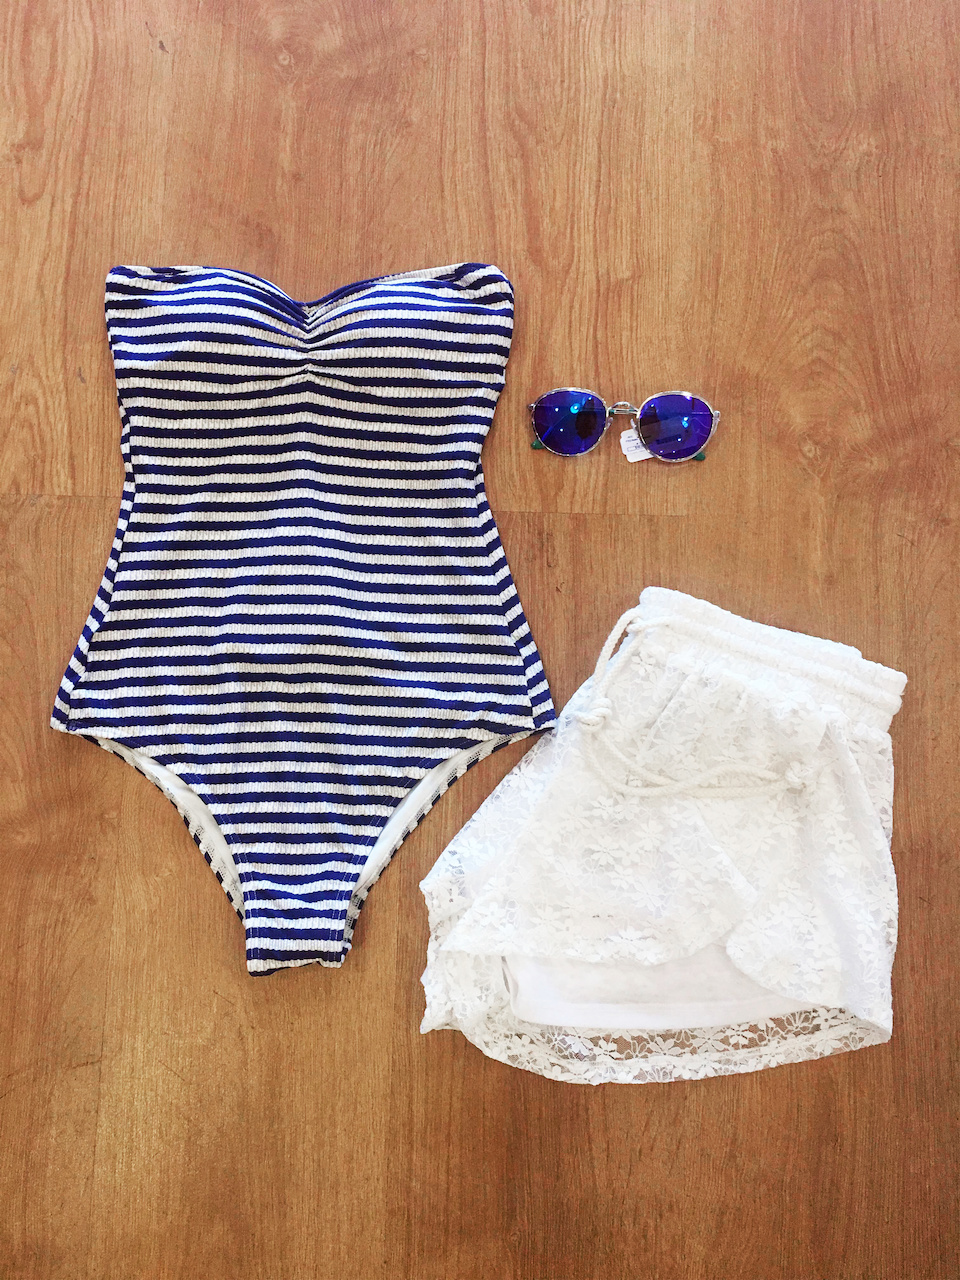 From Snap: Billabong stripe bathing suit, $80; white lace shorts, $68; TTO Retro Sunglasses, $16